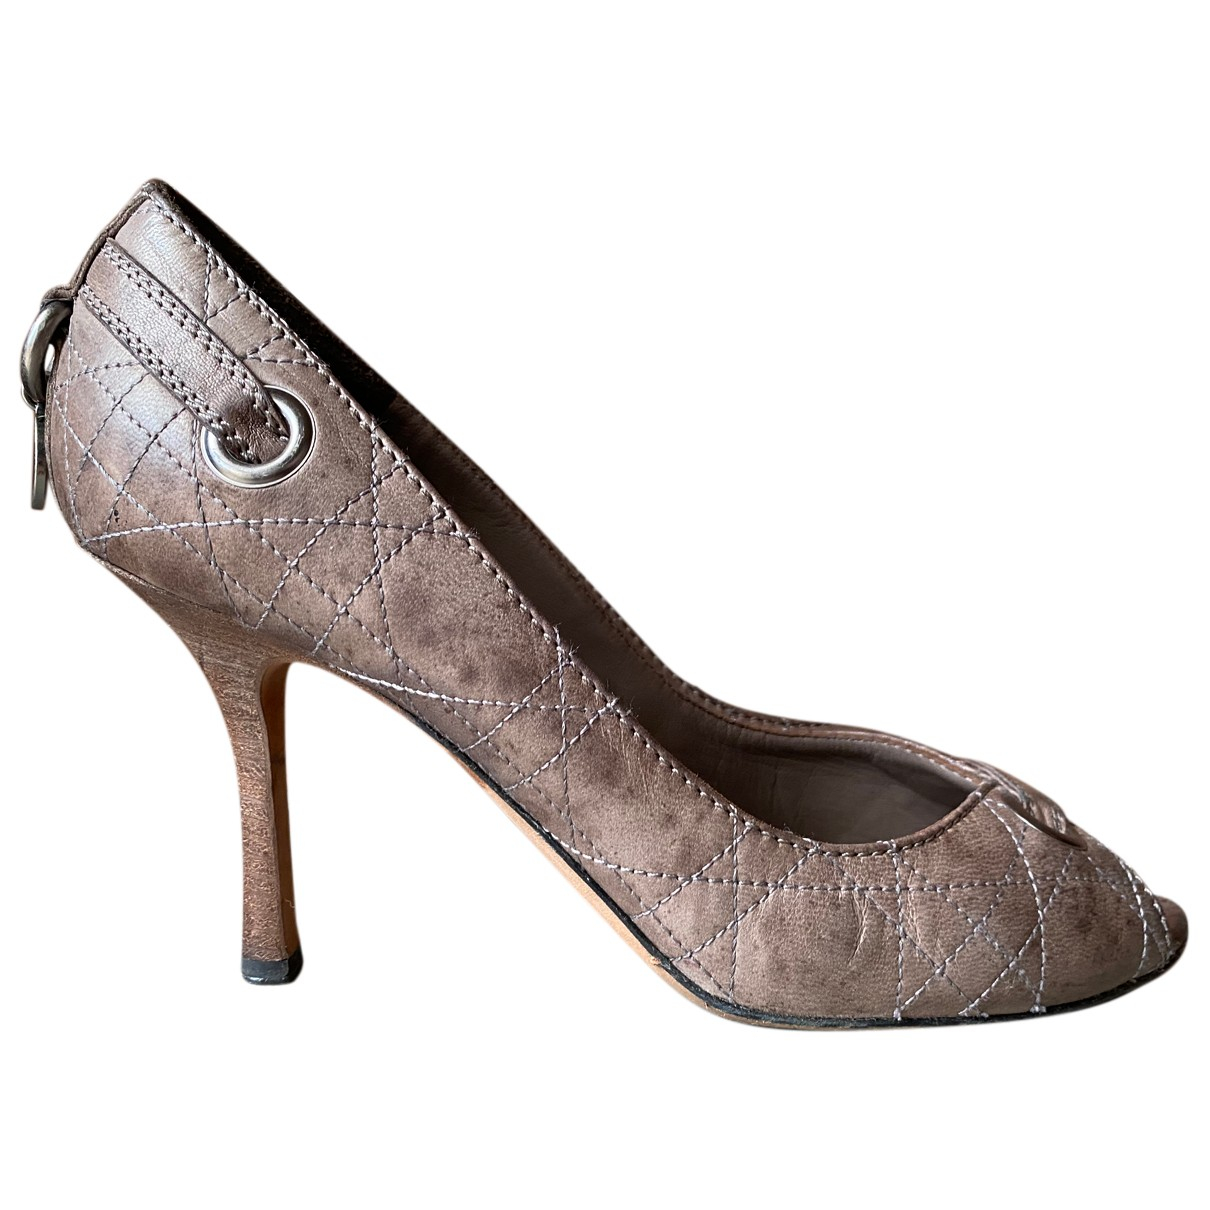 Dior N Anthracite Leather Heels for Women 38.5 EU